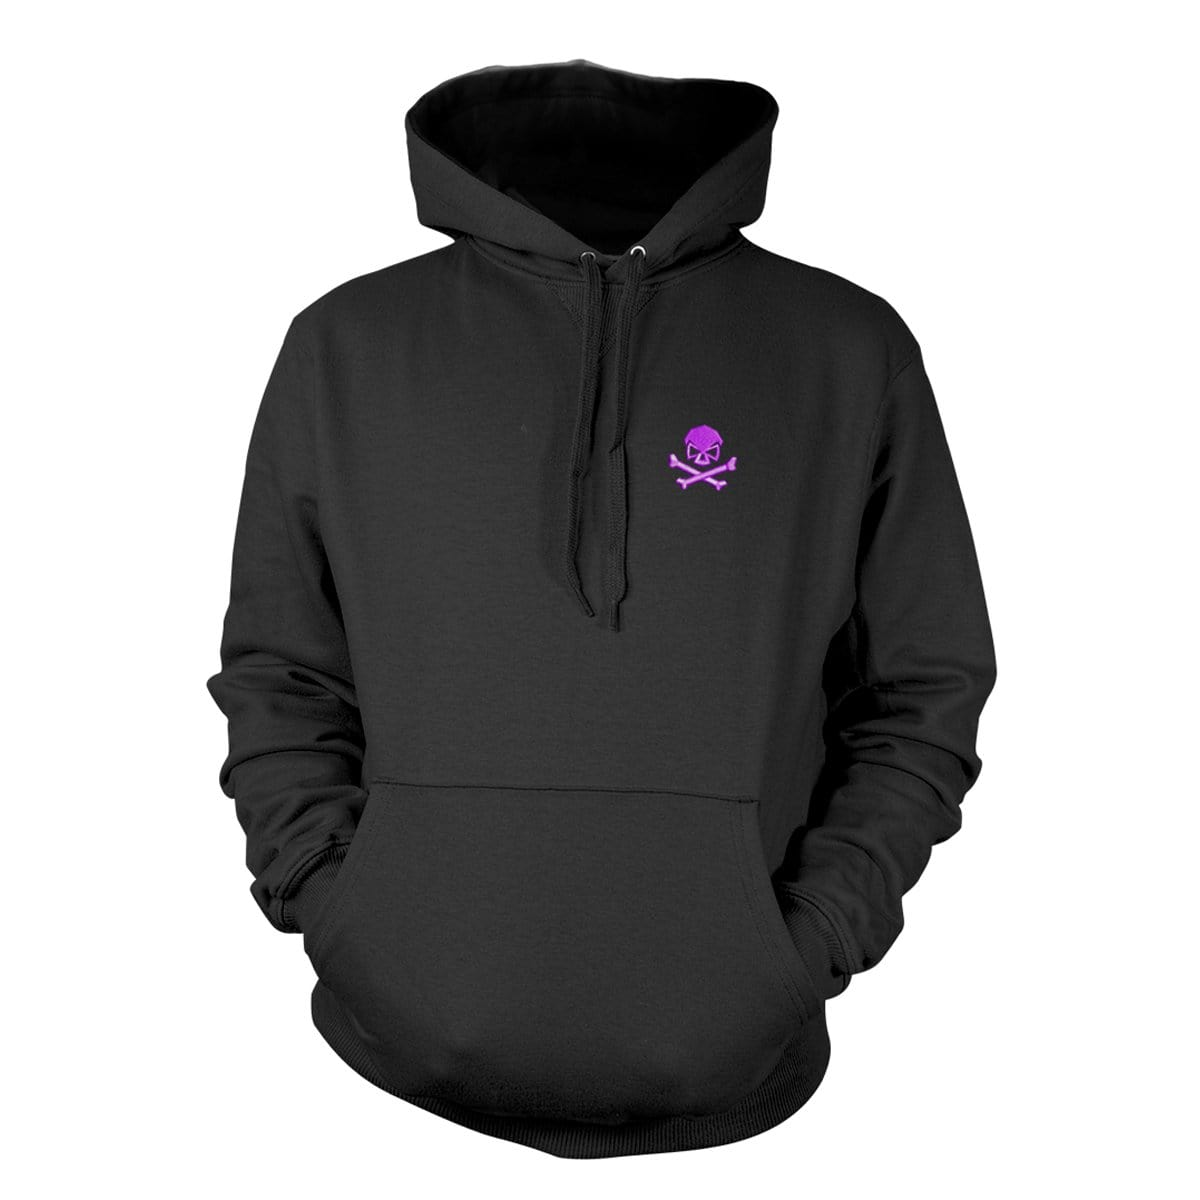 Skull & Bones Hoodie (Embroidered) - Pipe Hitters Union